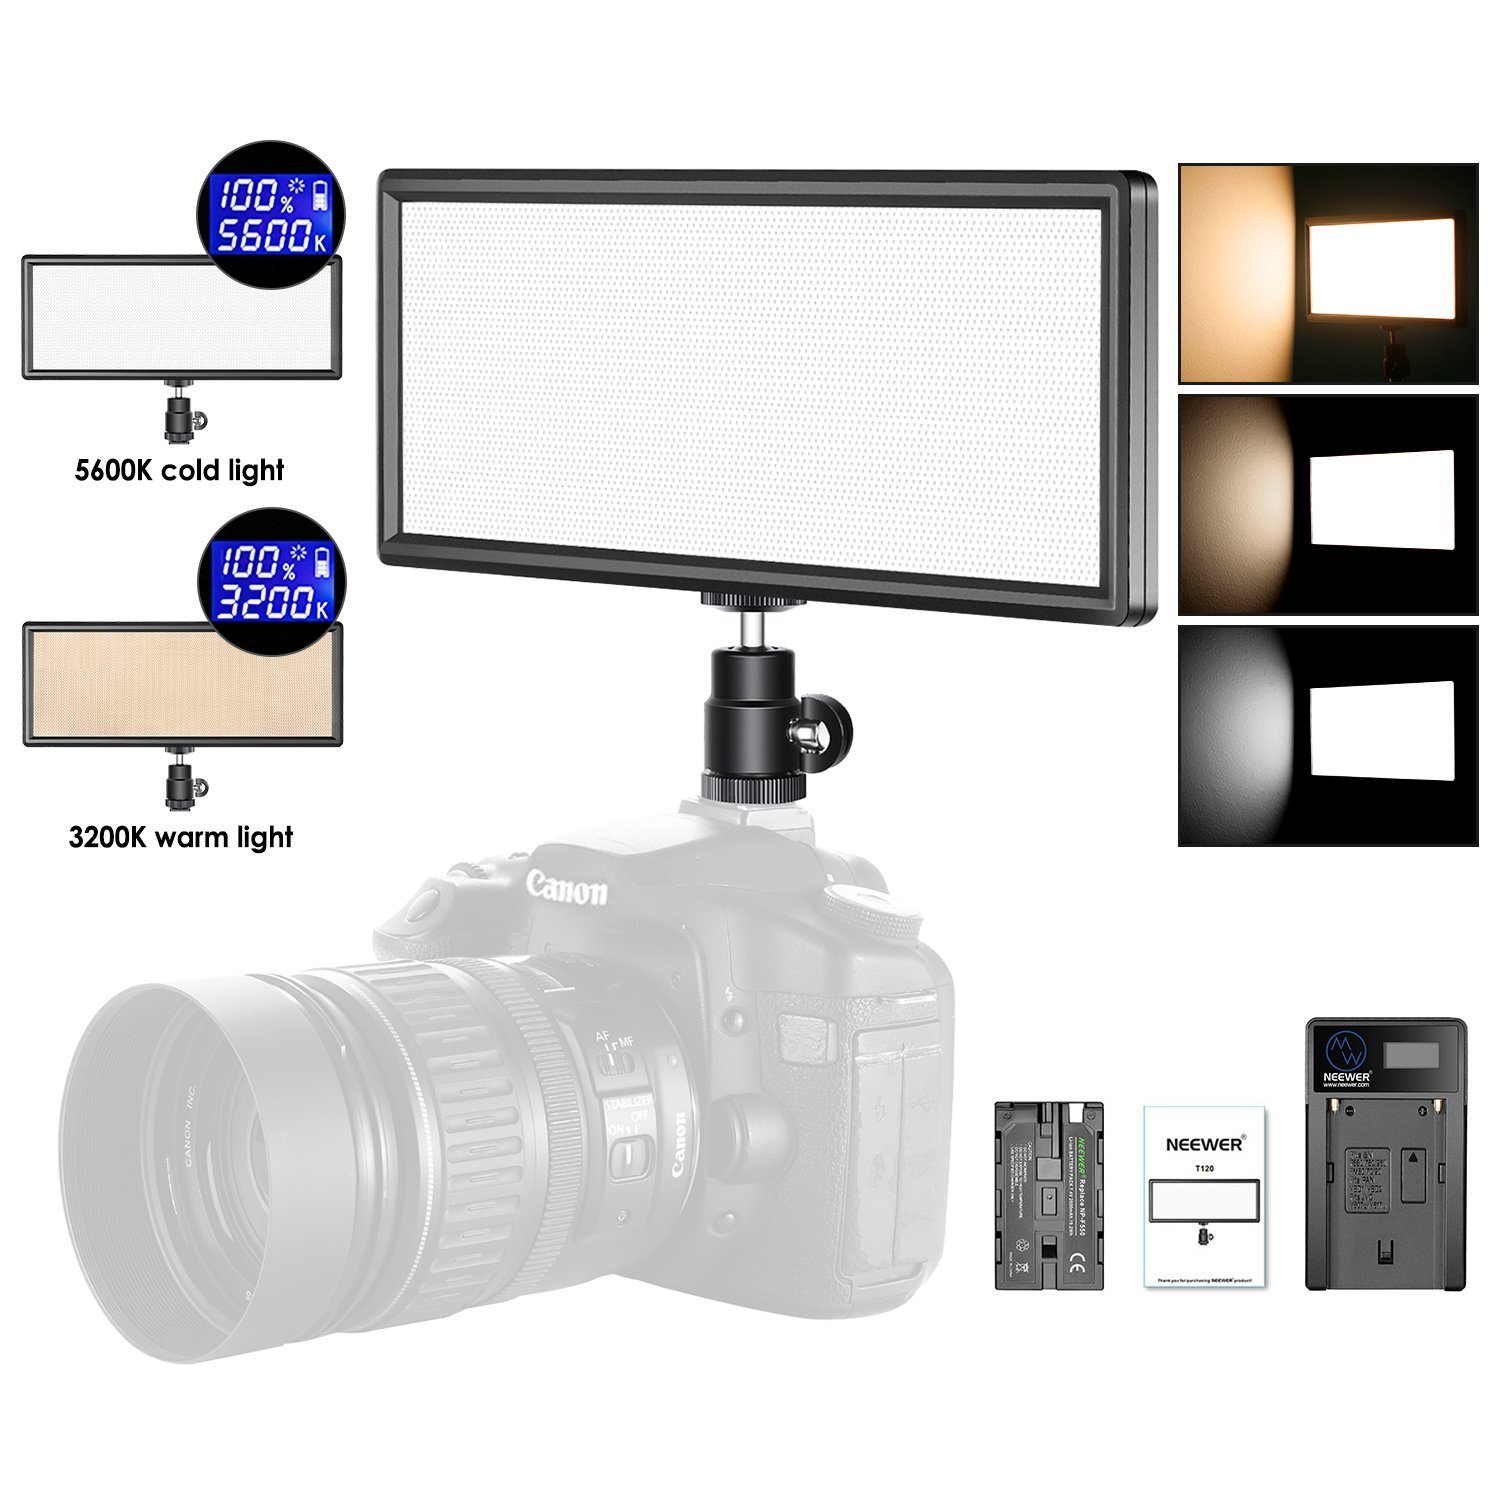 Neewer Super Slim Bi-color Dimmable LED Video Light with LCD Display, 2600mAh Li-ion Battery and Charger - Ultra High Power LED Panel, 3200K-5600K for Camera Photo Studio Portrait Video Photography by Neewer